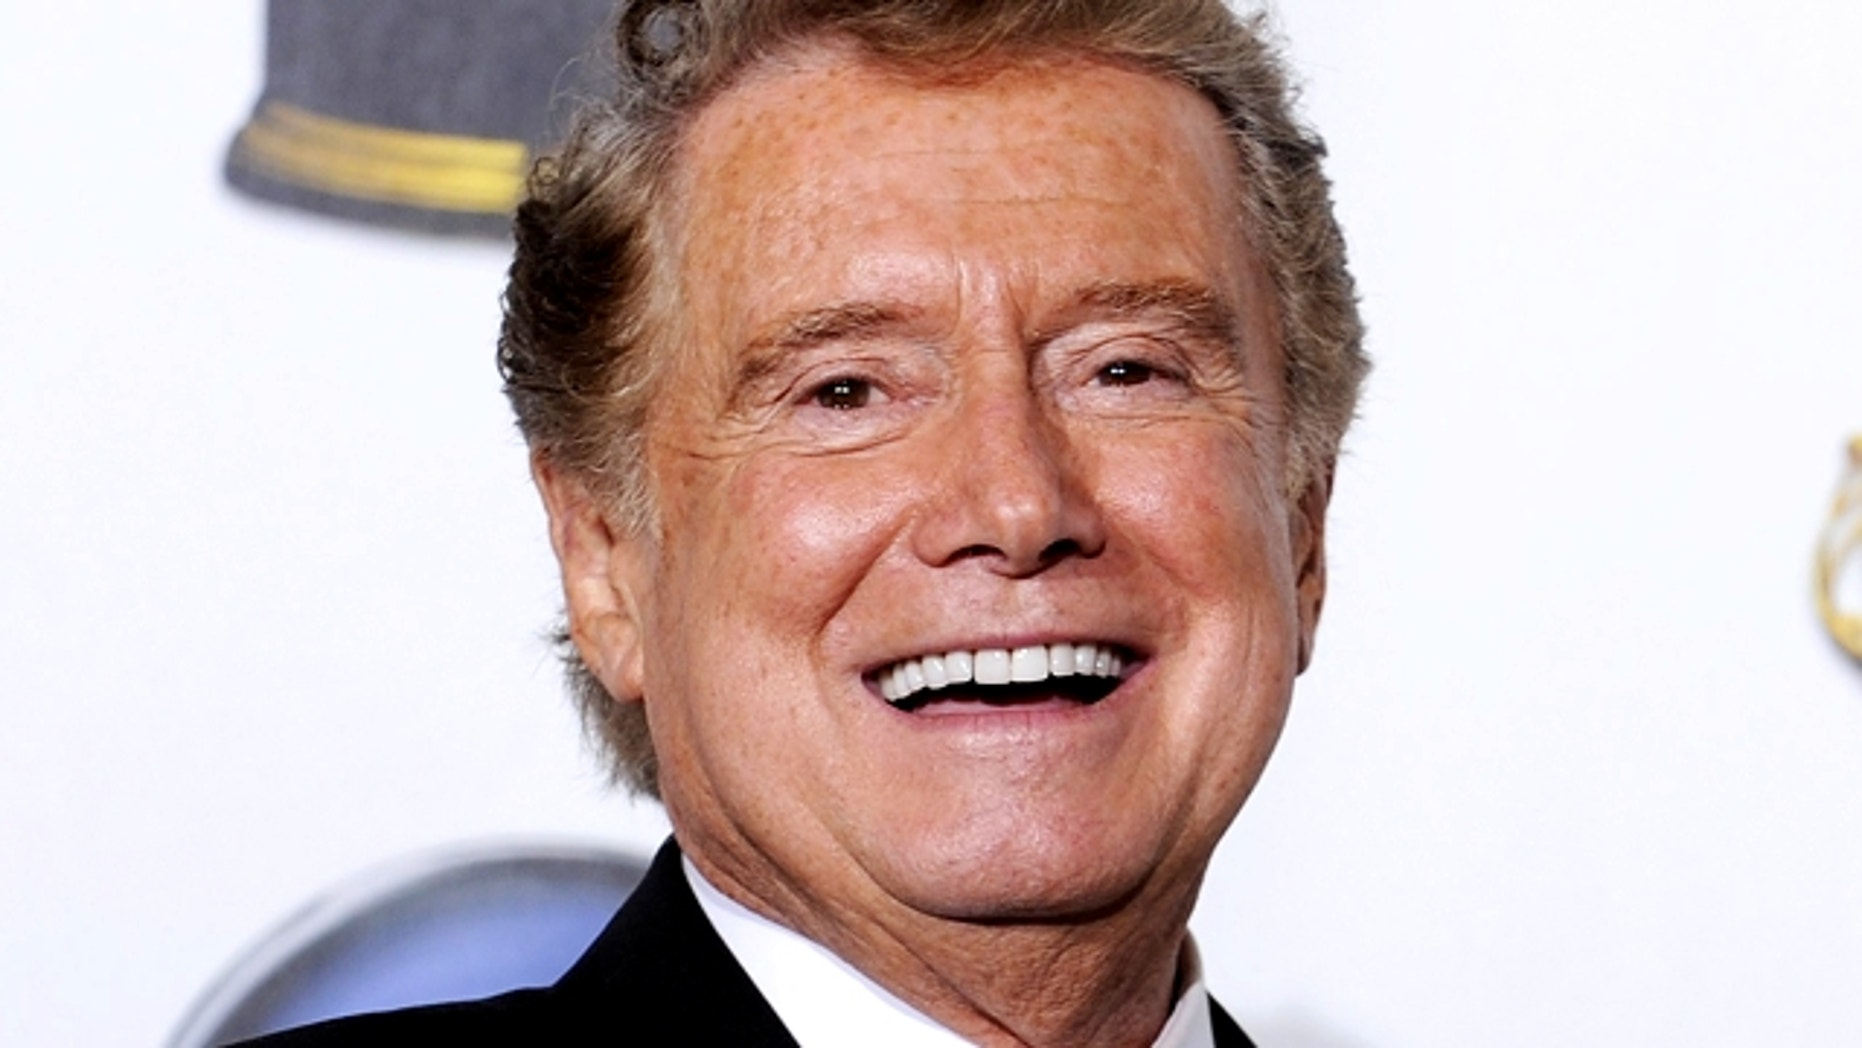 Regis Philbin. (Reuters)